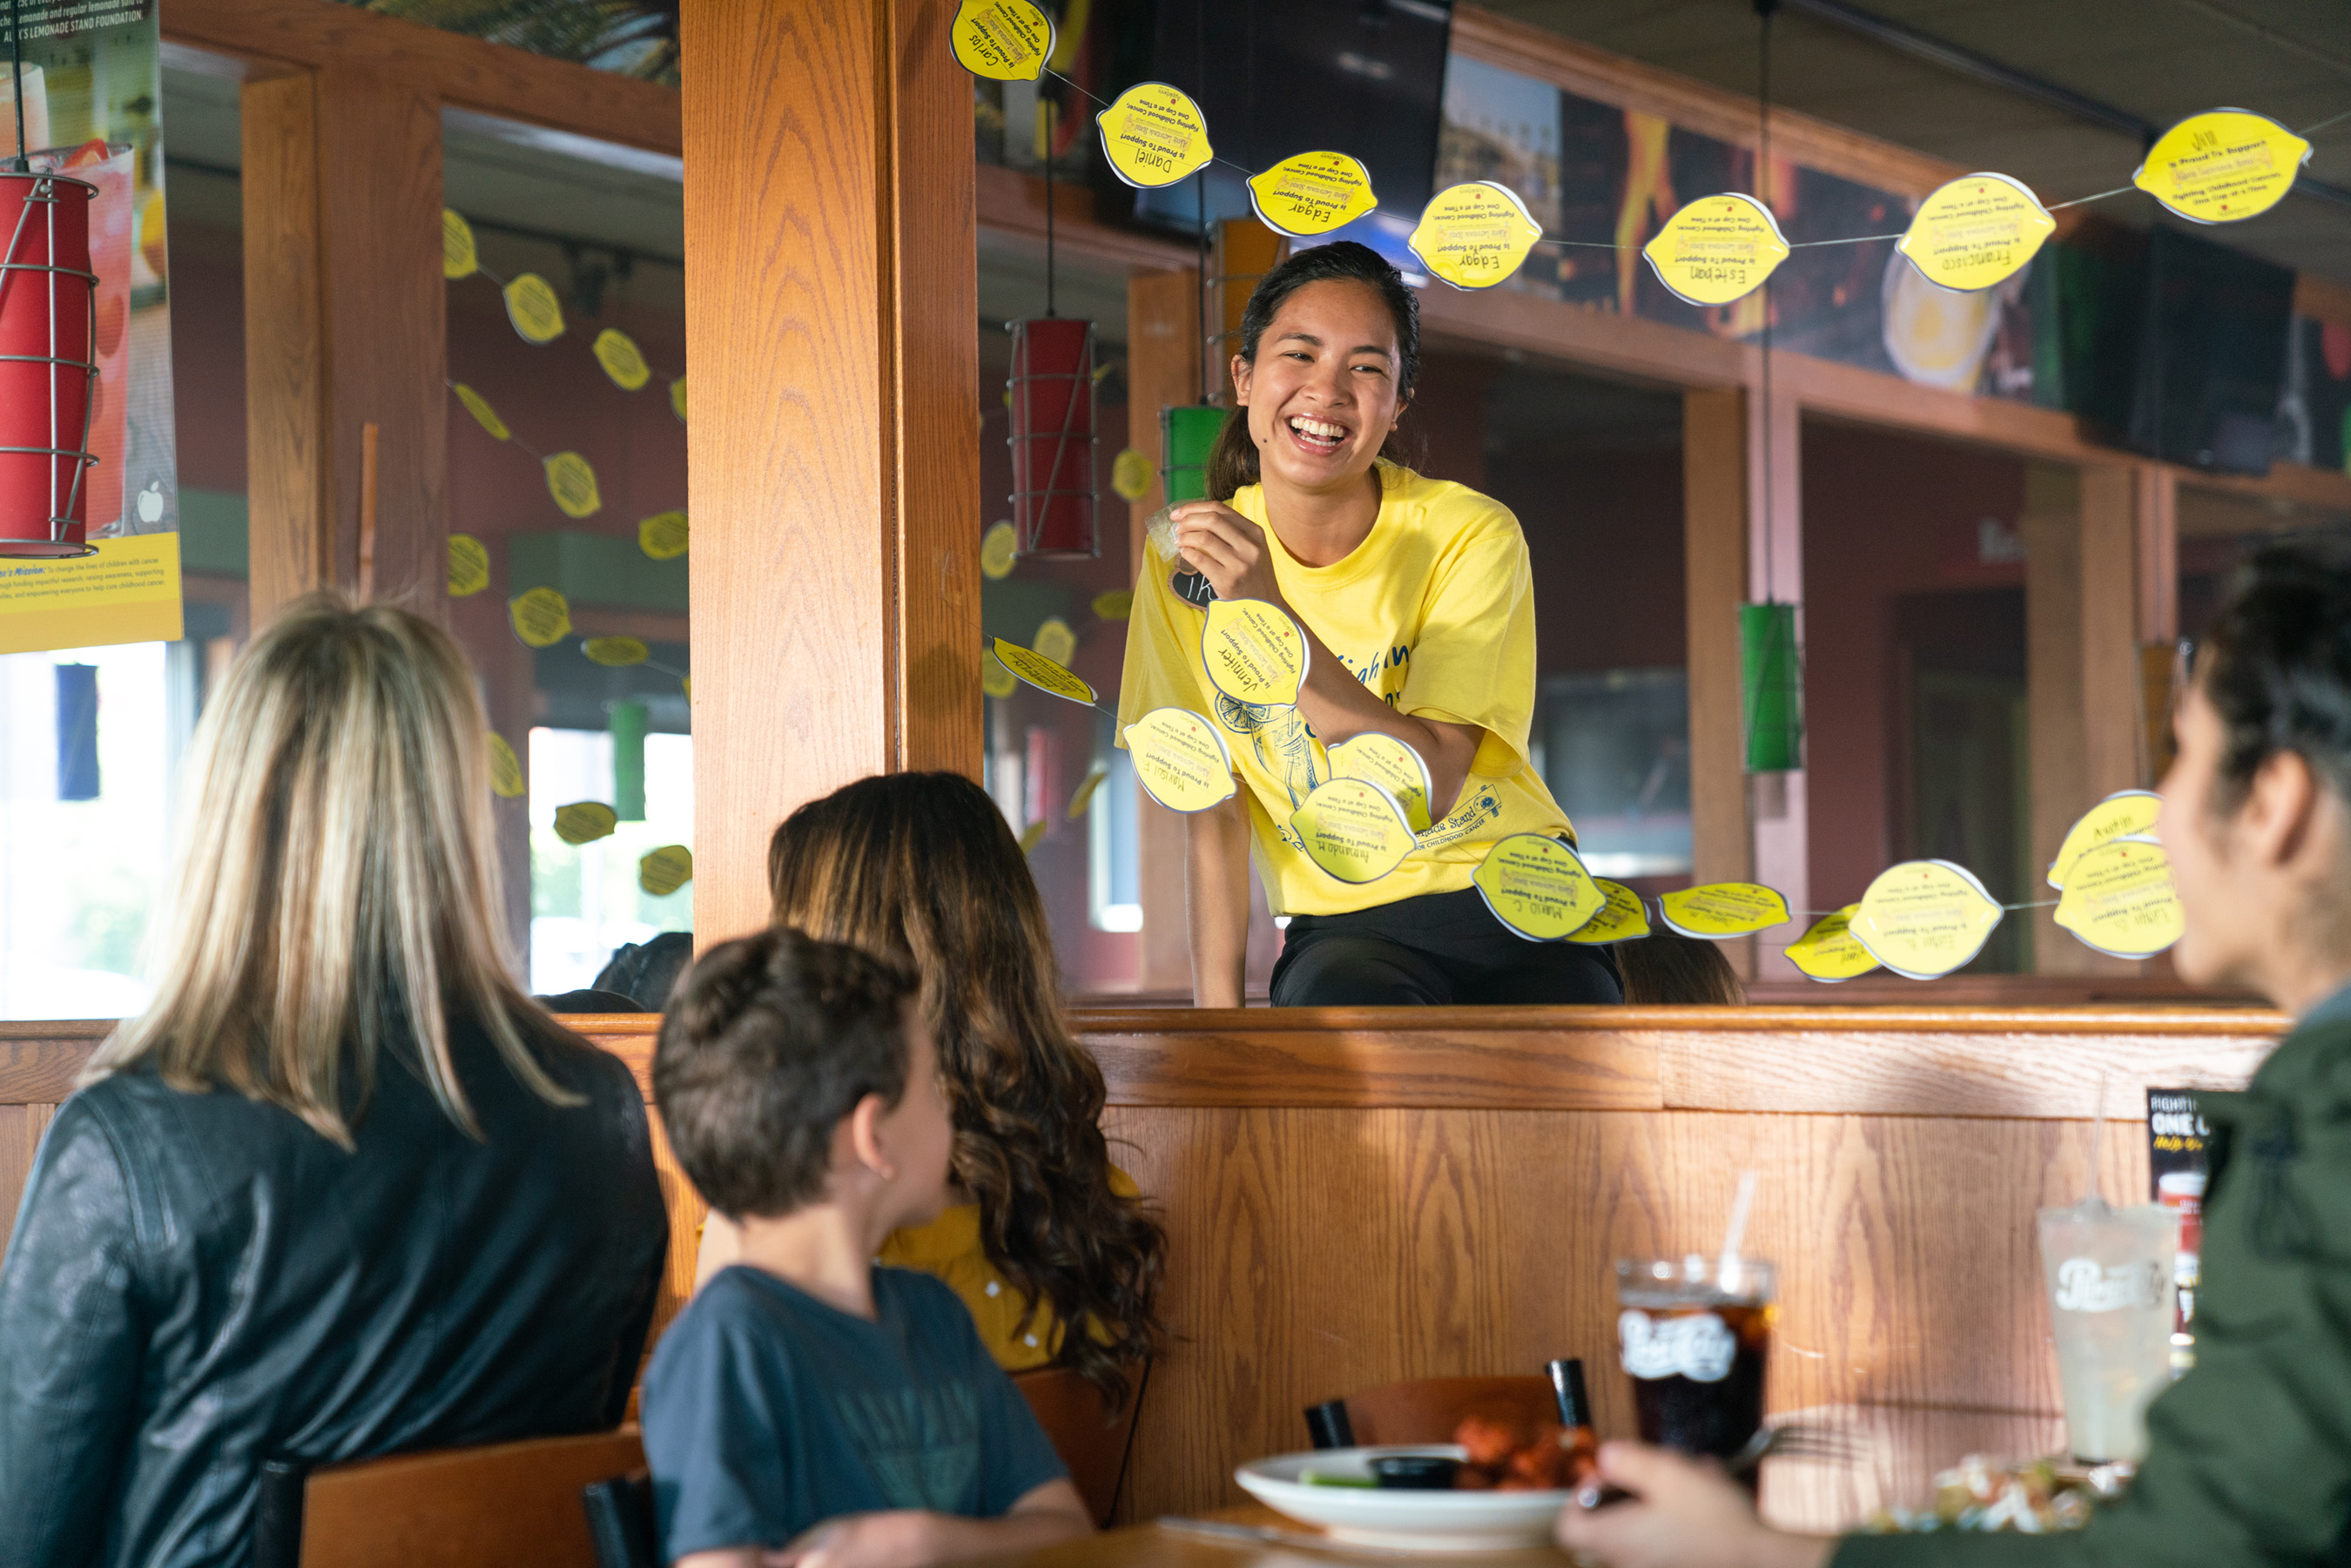 Now through Sunday, August 12, more than 1,050 participating Applebee's restaurants aim to raise $1 million for Alex's Lemonade Stand Foundation.